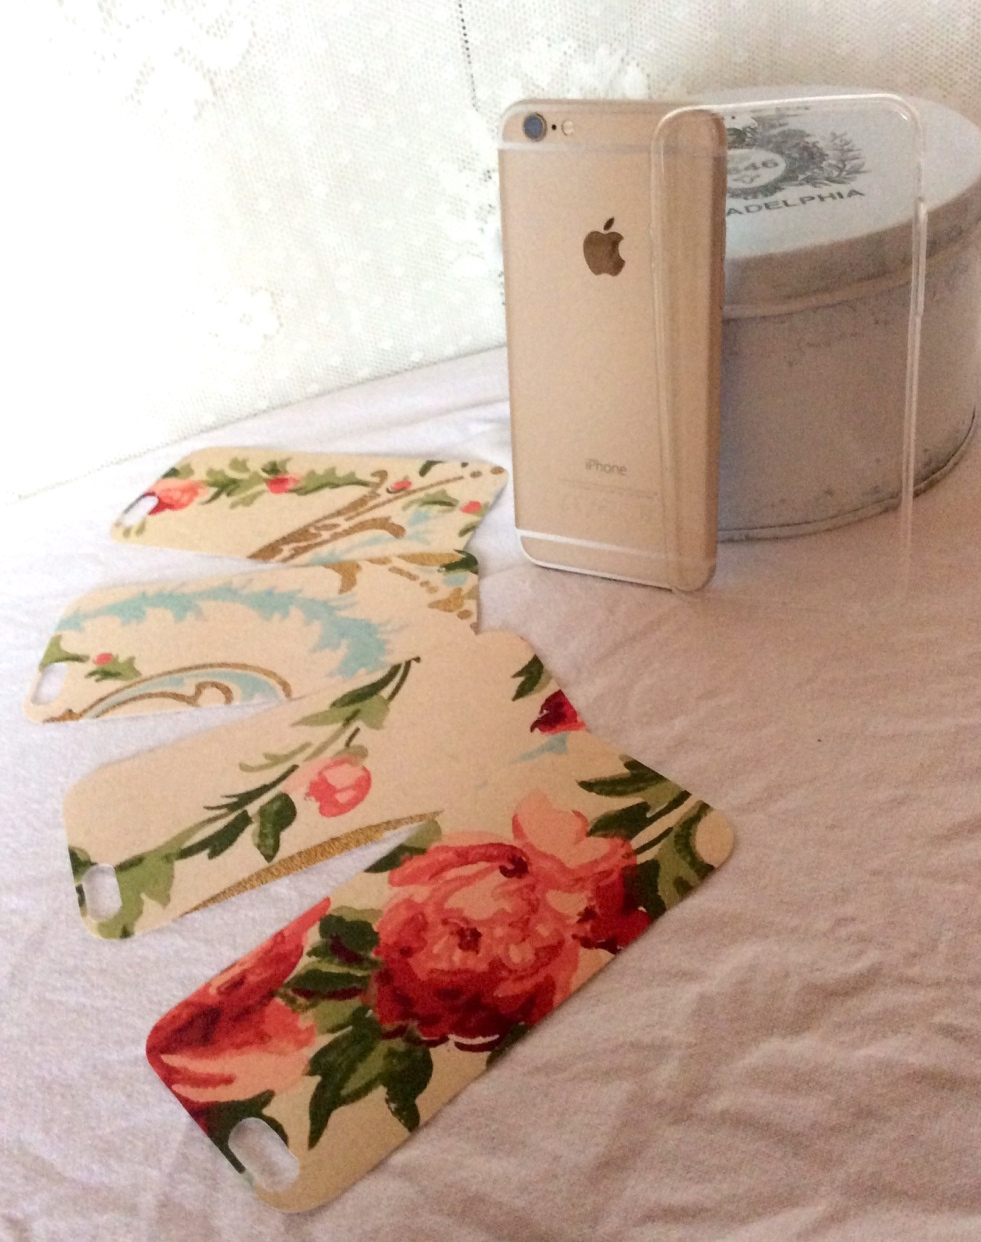 Wings of Whimsy: iPhone 6 Covers #vintage #epehemera #freebie #printable #wallpaper #iphone #cover